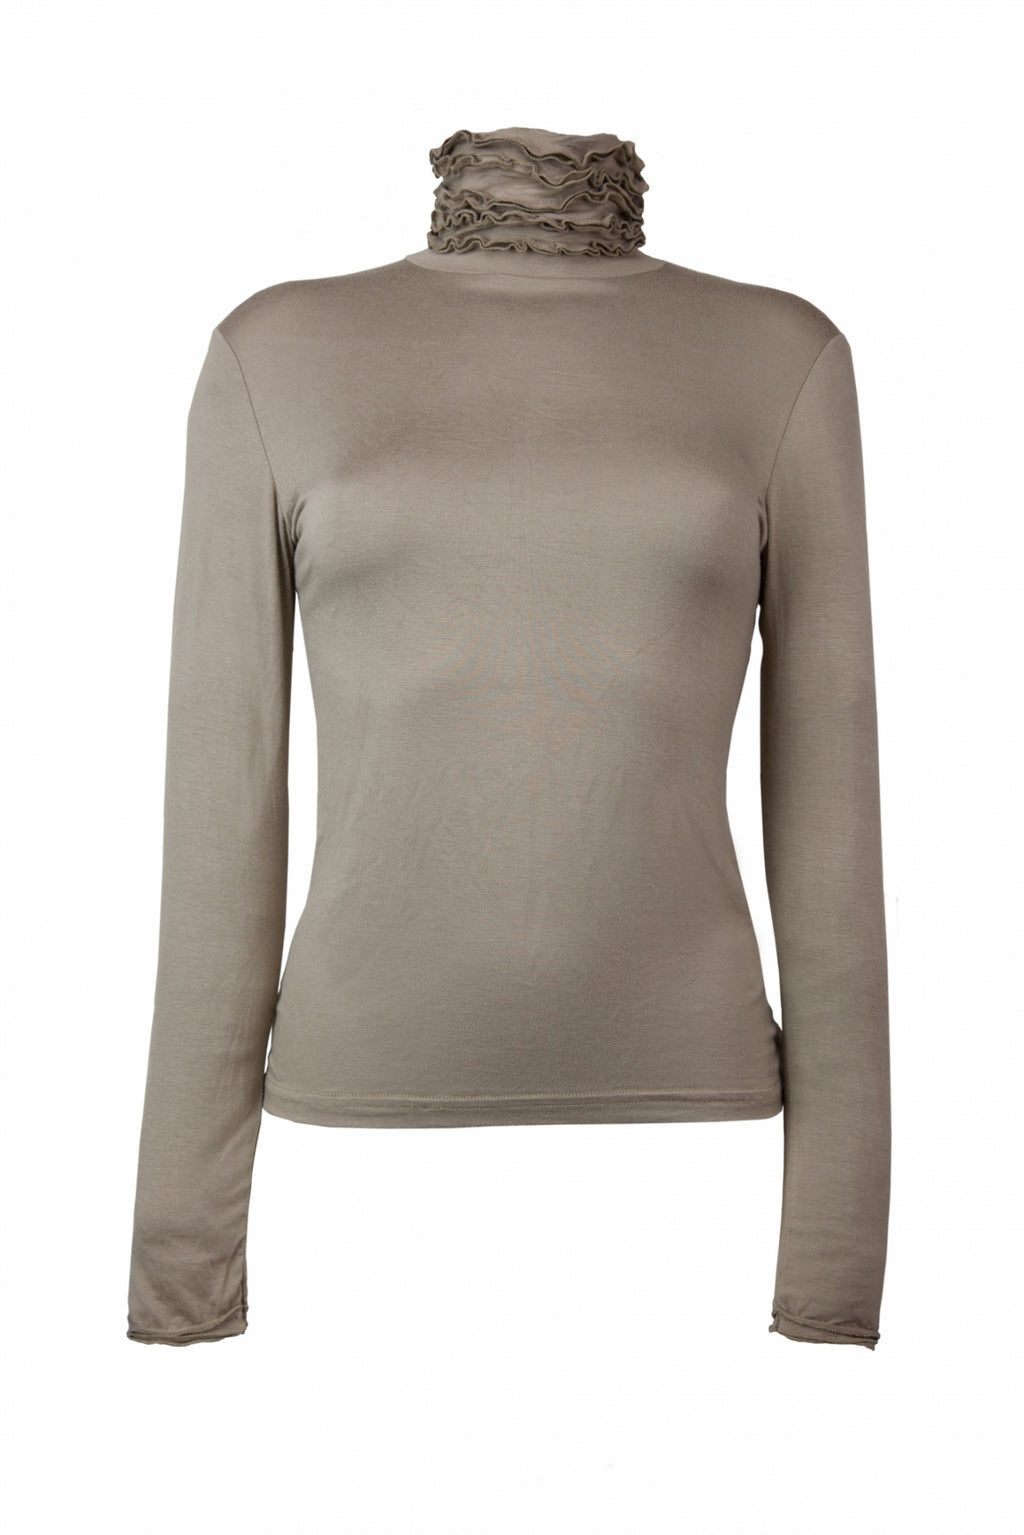 Best selling fine knit Ruffle Polo Neck Sweater in Mink by Sally Allen